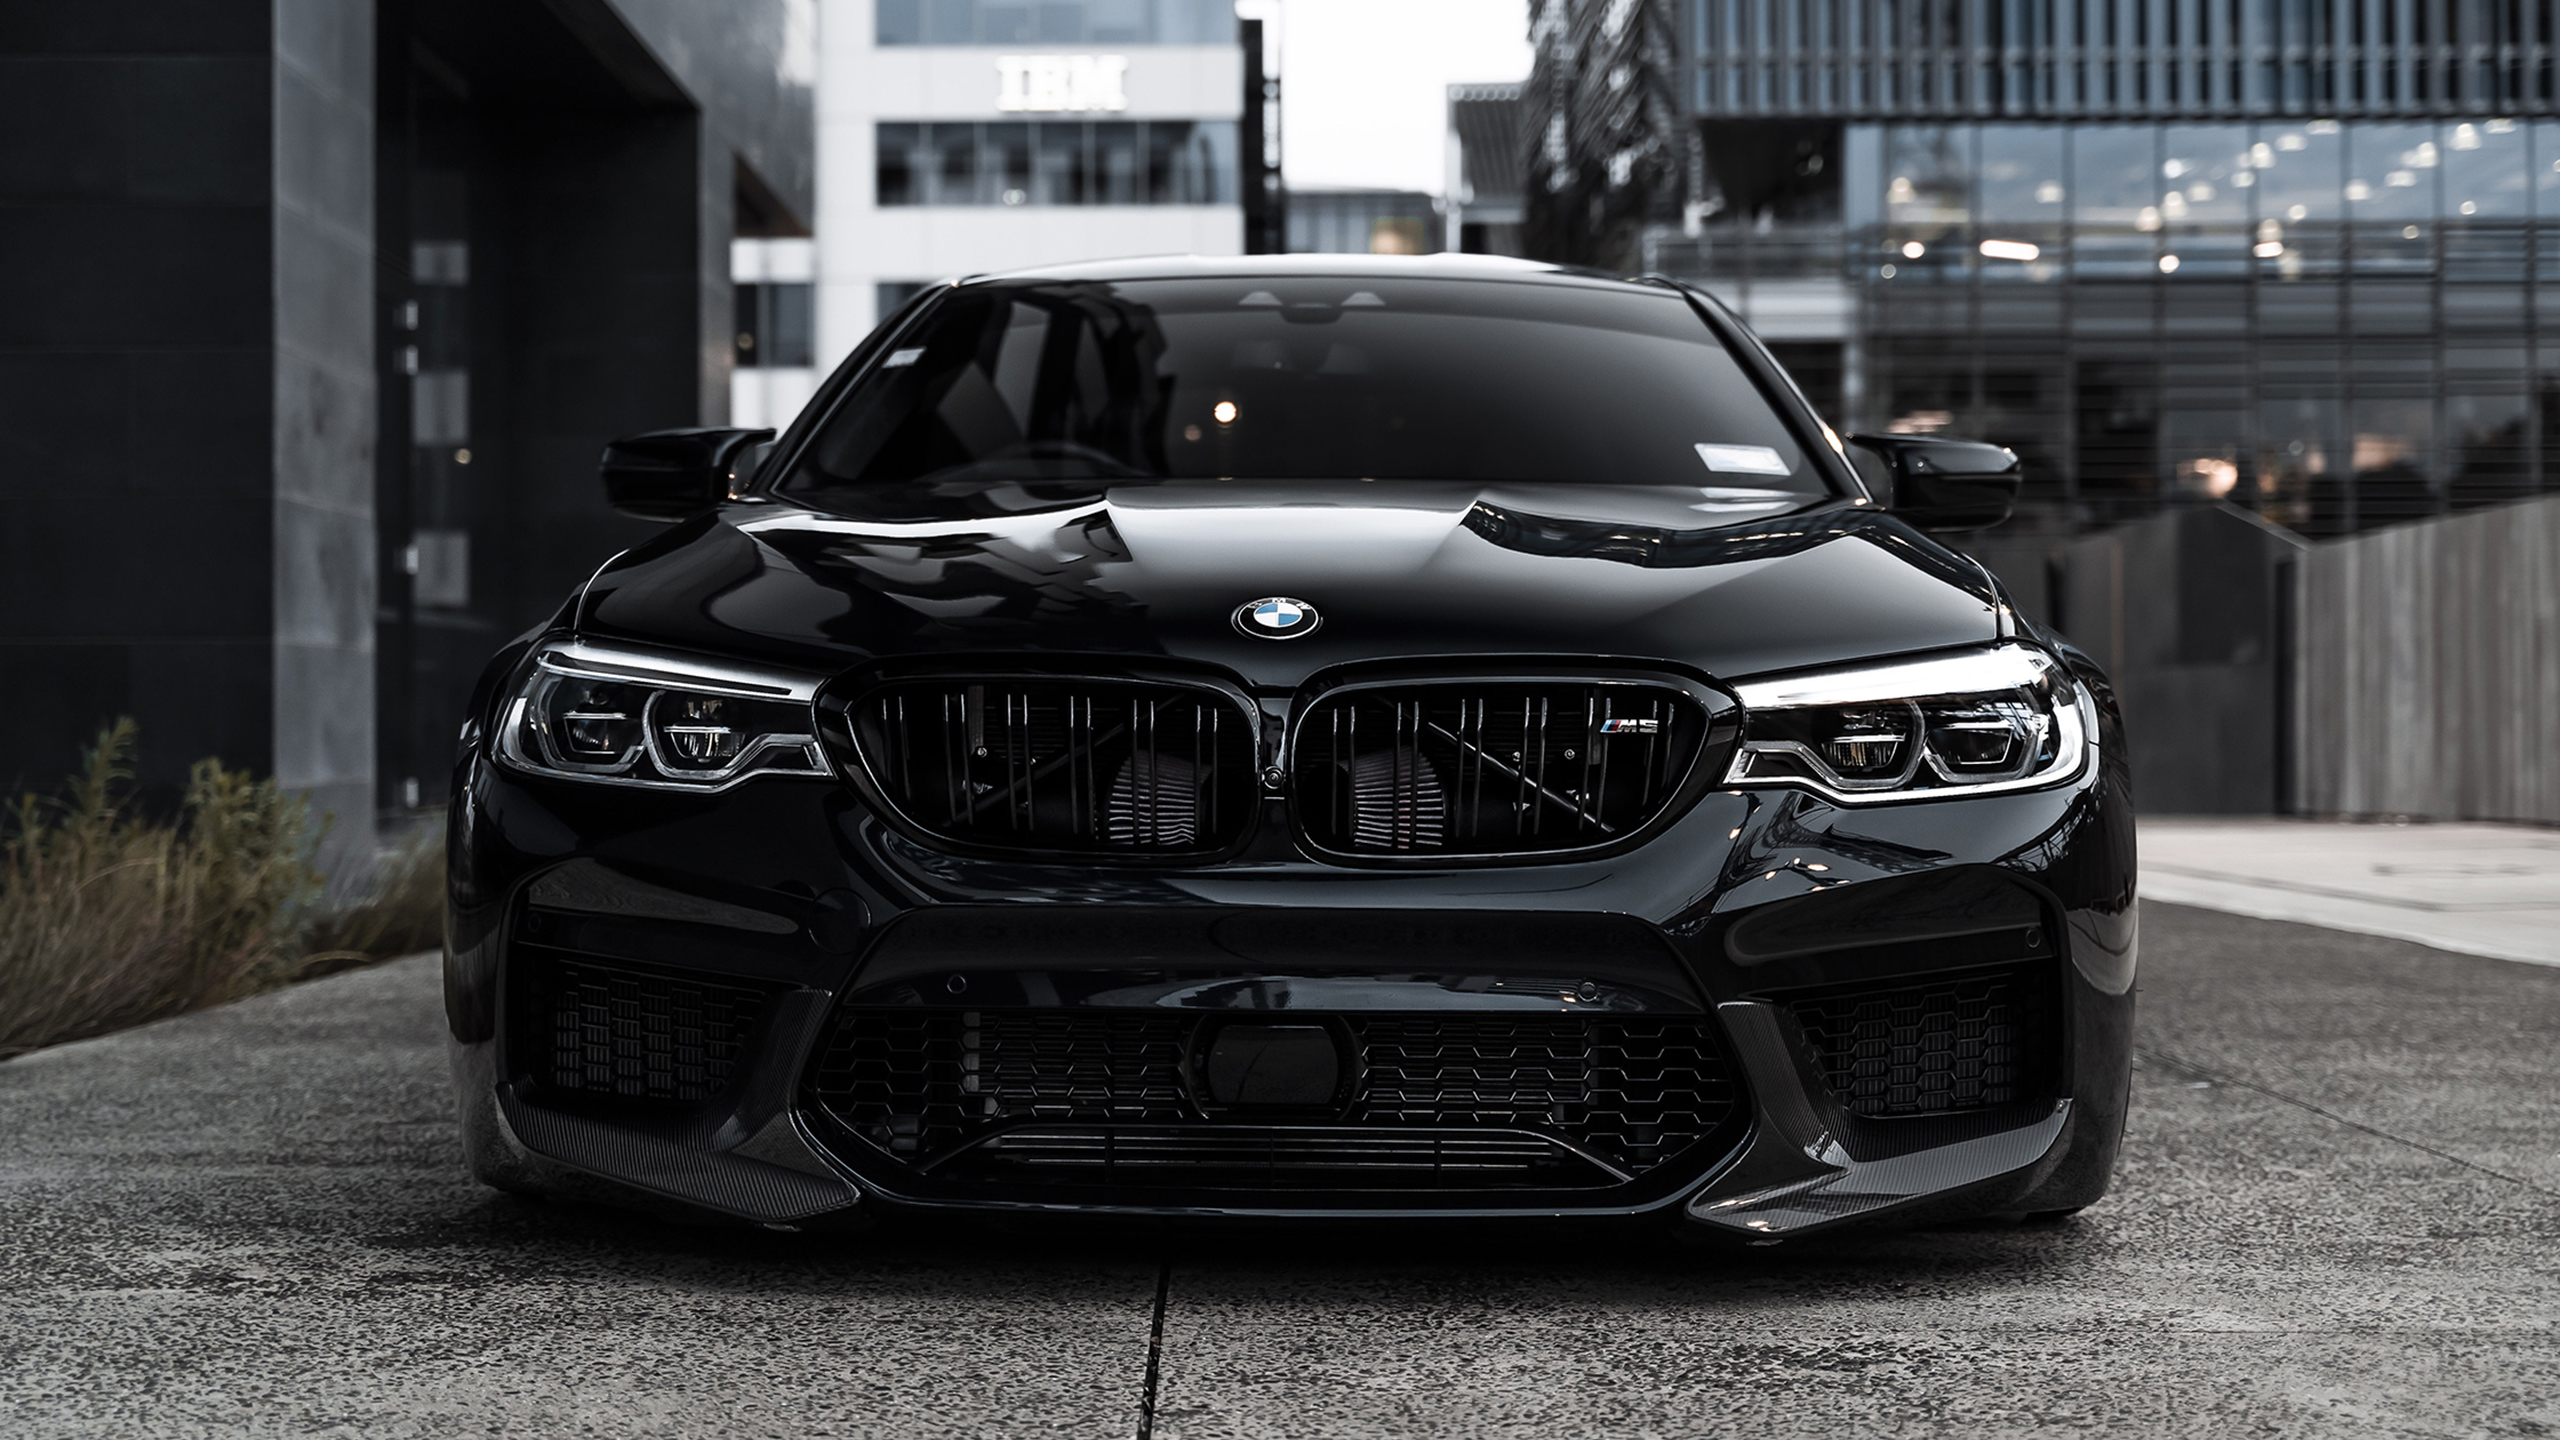 Bmw M5 F90 Wallpaper Hd Car Wallpapers Id 12524